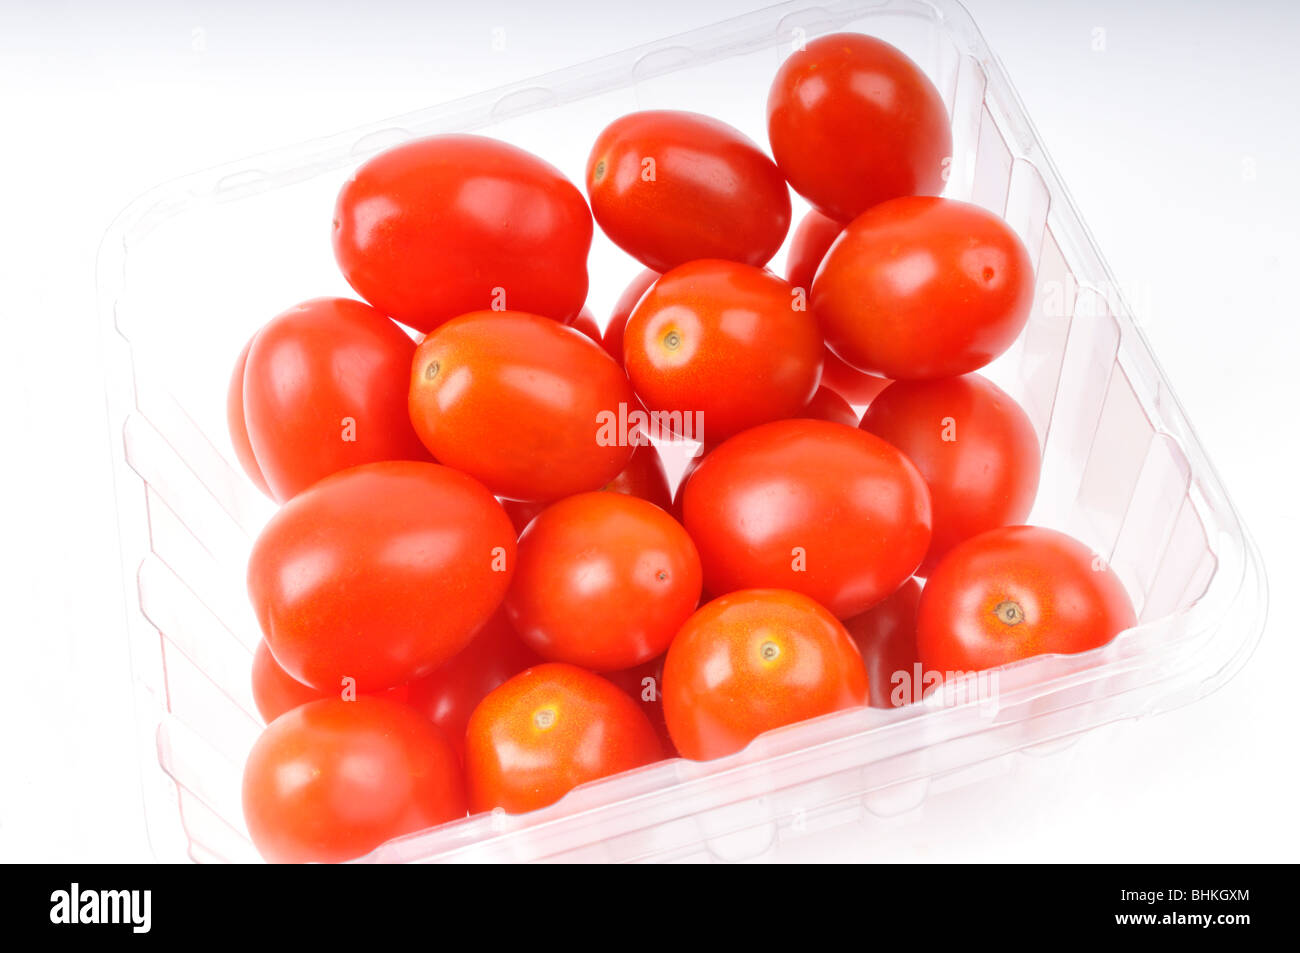 Red cherry tomatoes in clear plastic container on white background - Stock Image